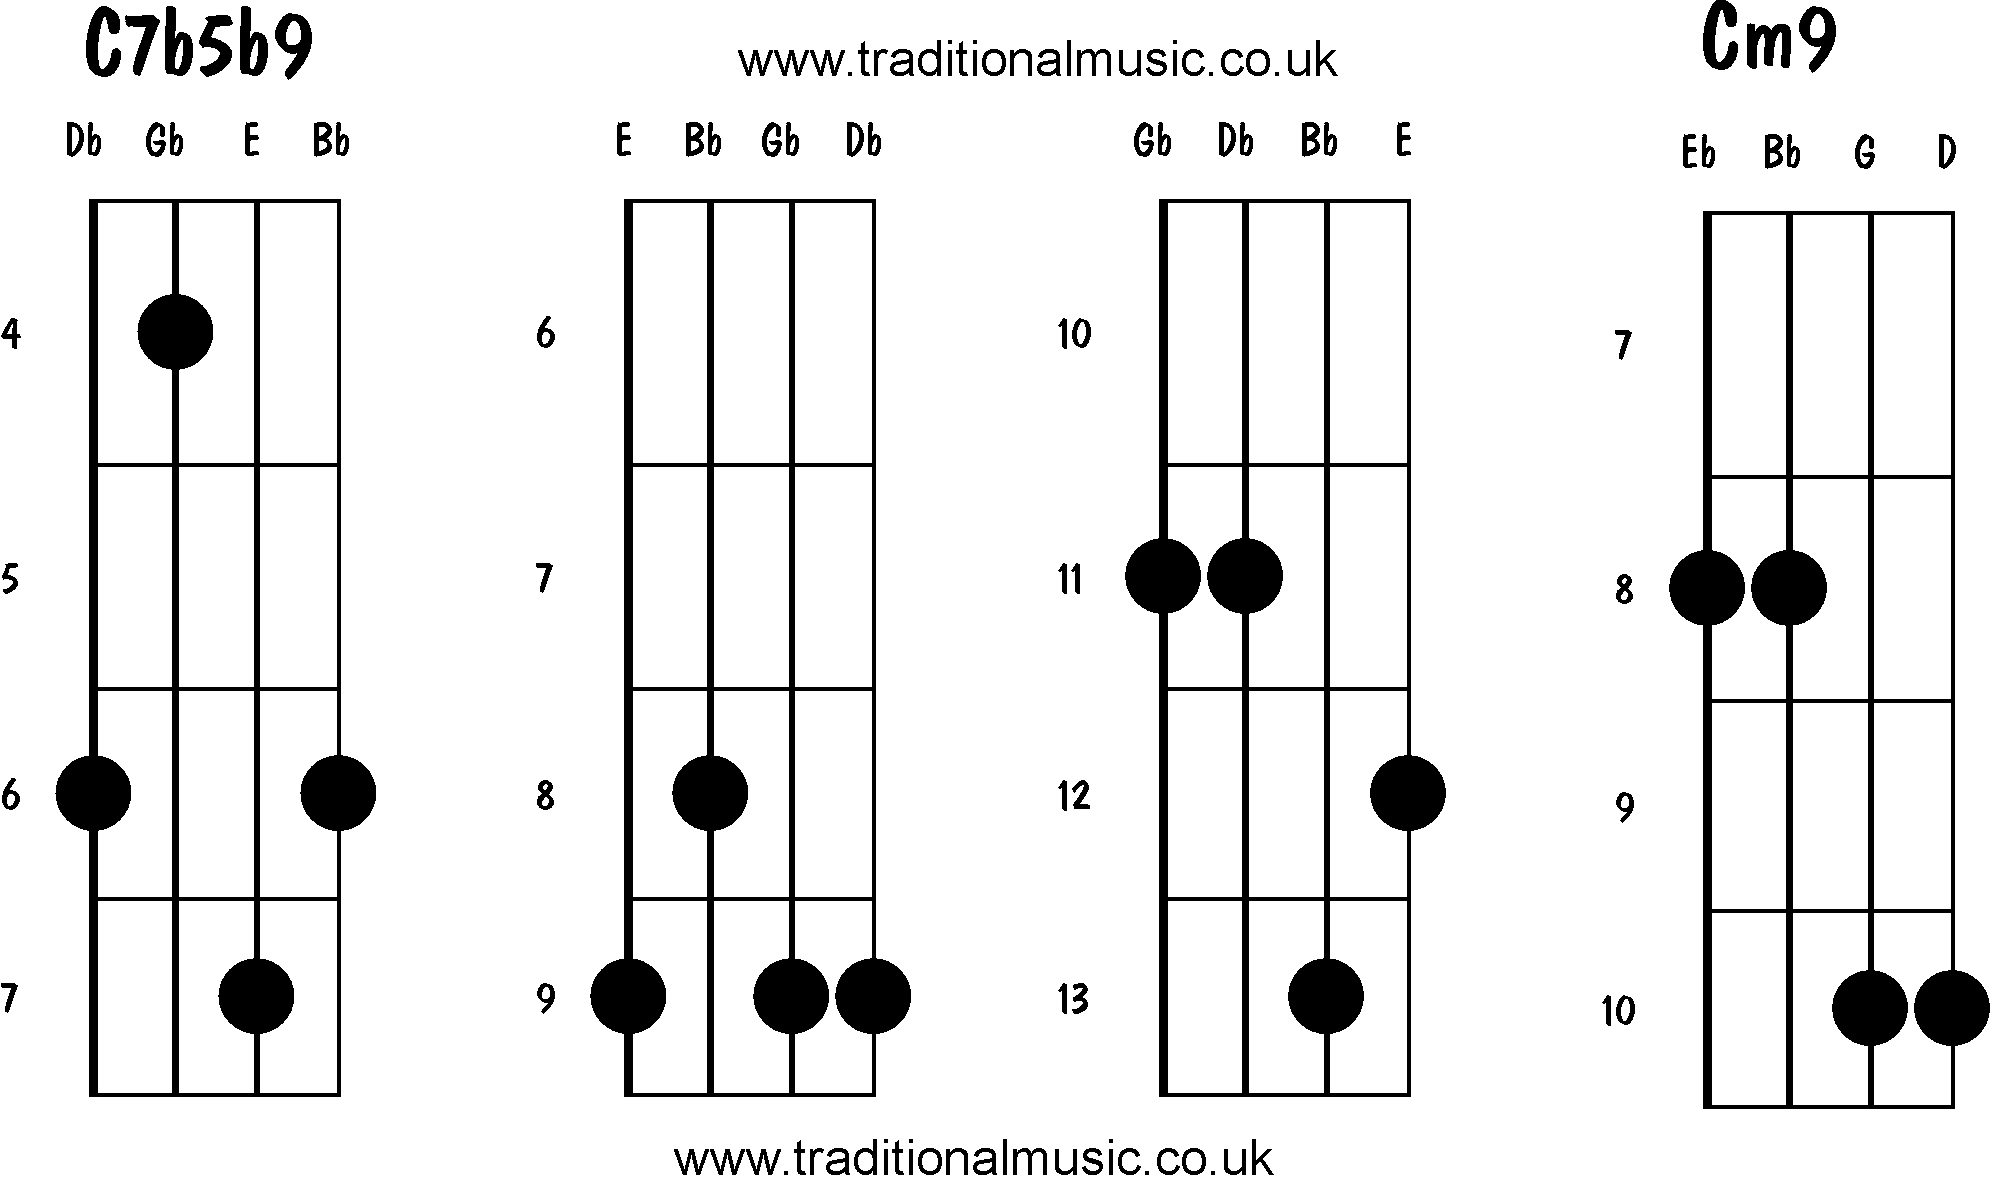 Chords diagrams and chartsprintable pdffor banjo guitar dobro advanced and movable mandolin chords hexwebz Images